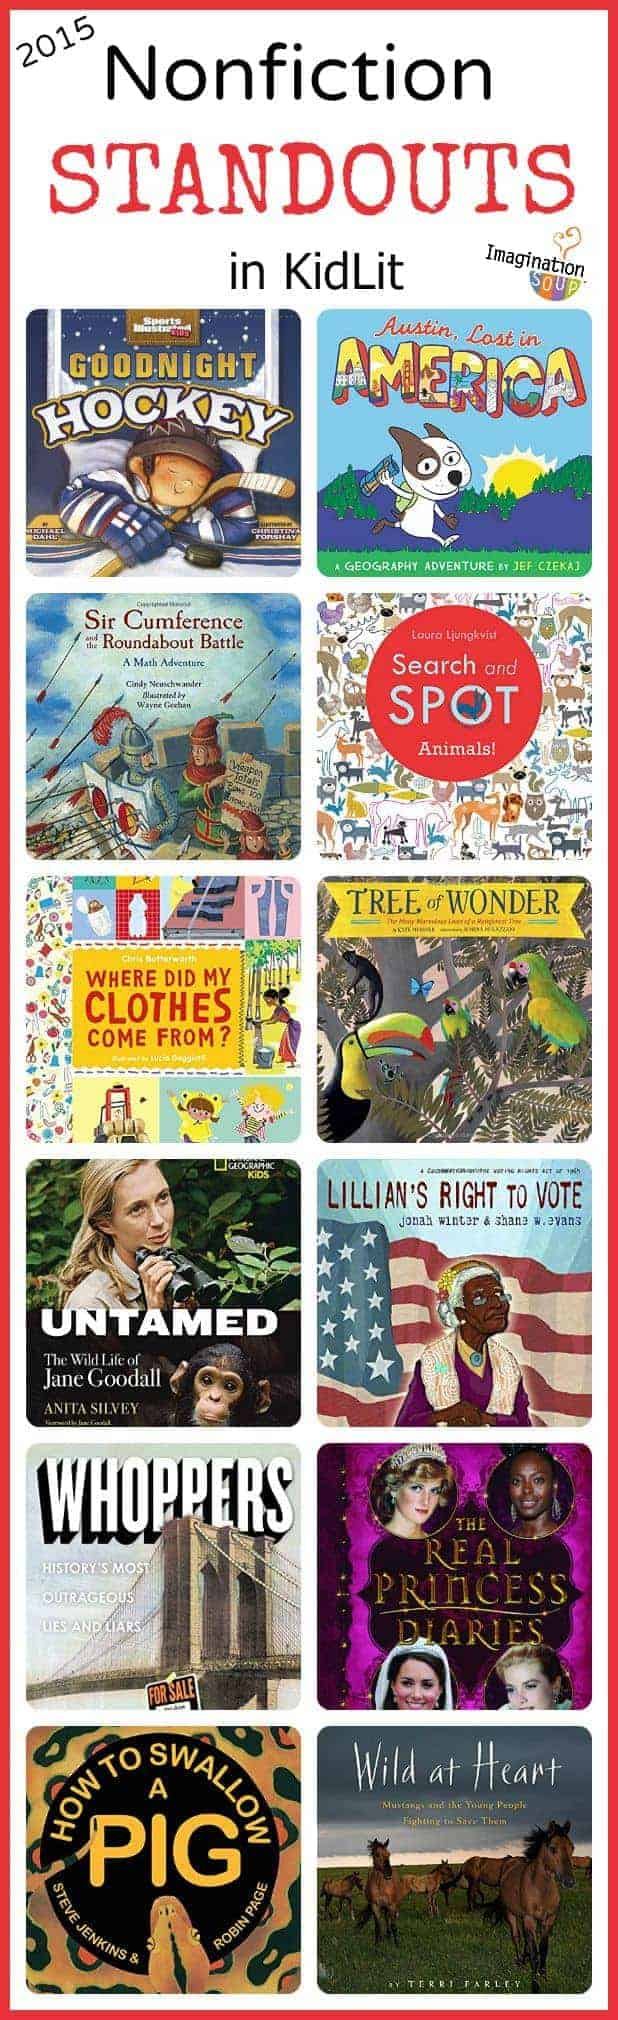 New Nonfiction Standouts in Kidlit